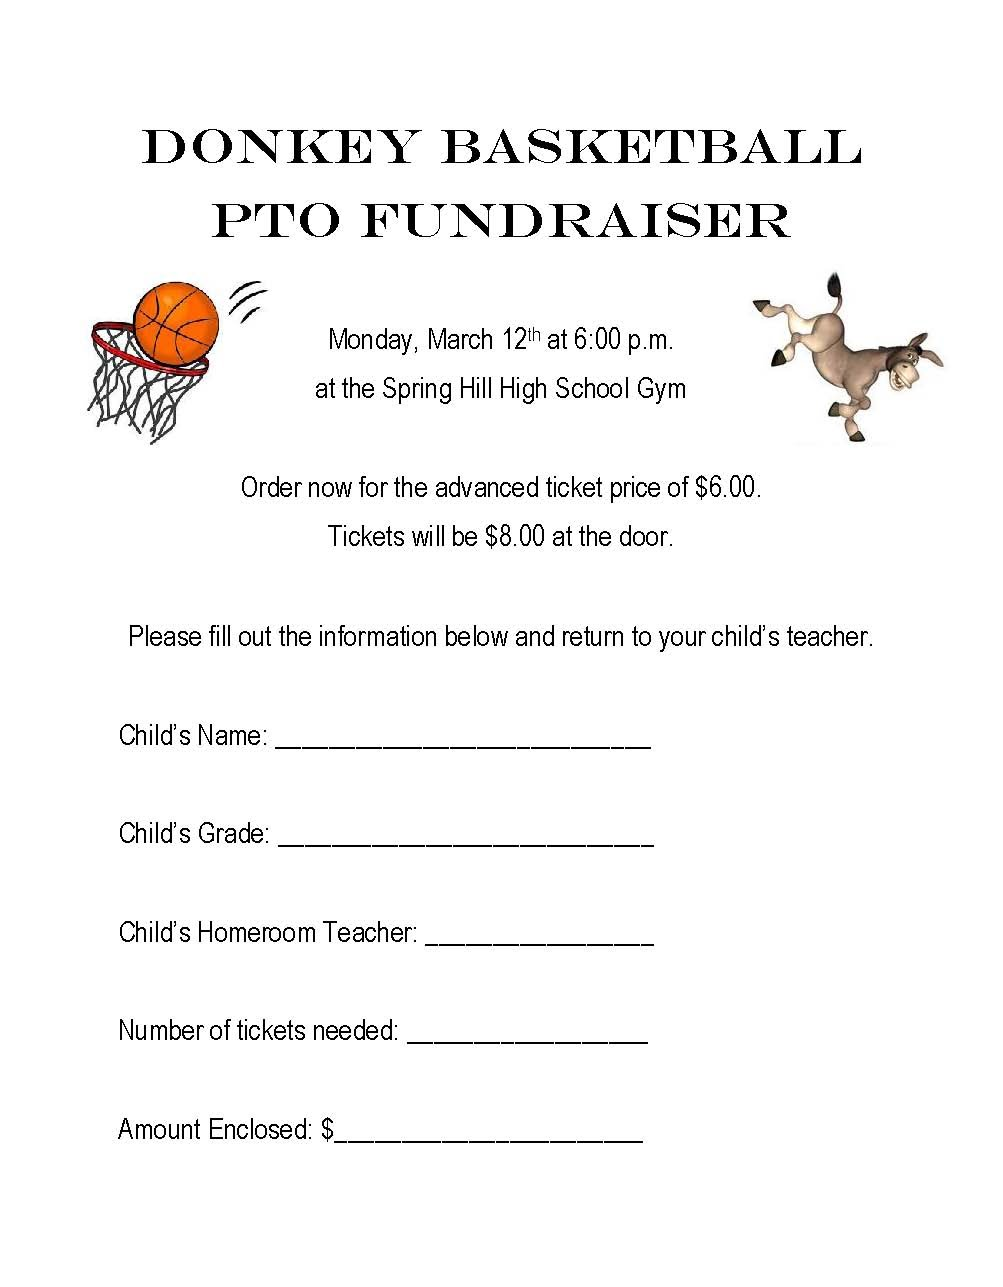 PTO Donkey Basketball, March 12th, 6:00 pm Ticket Form